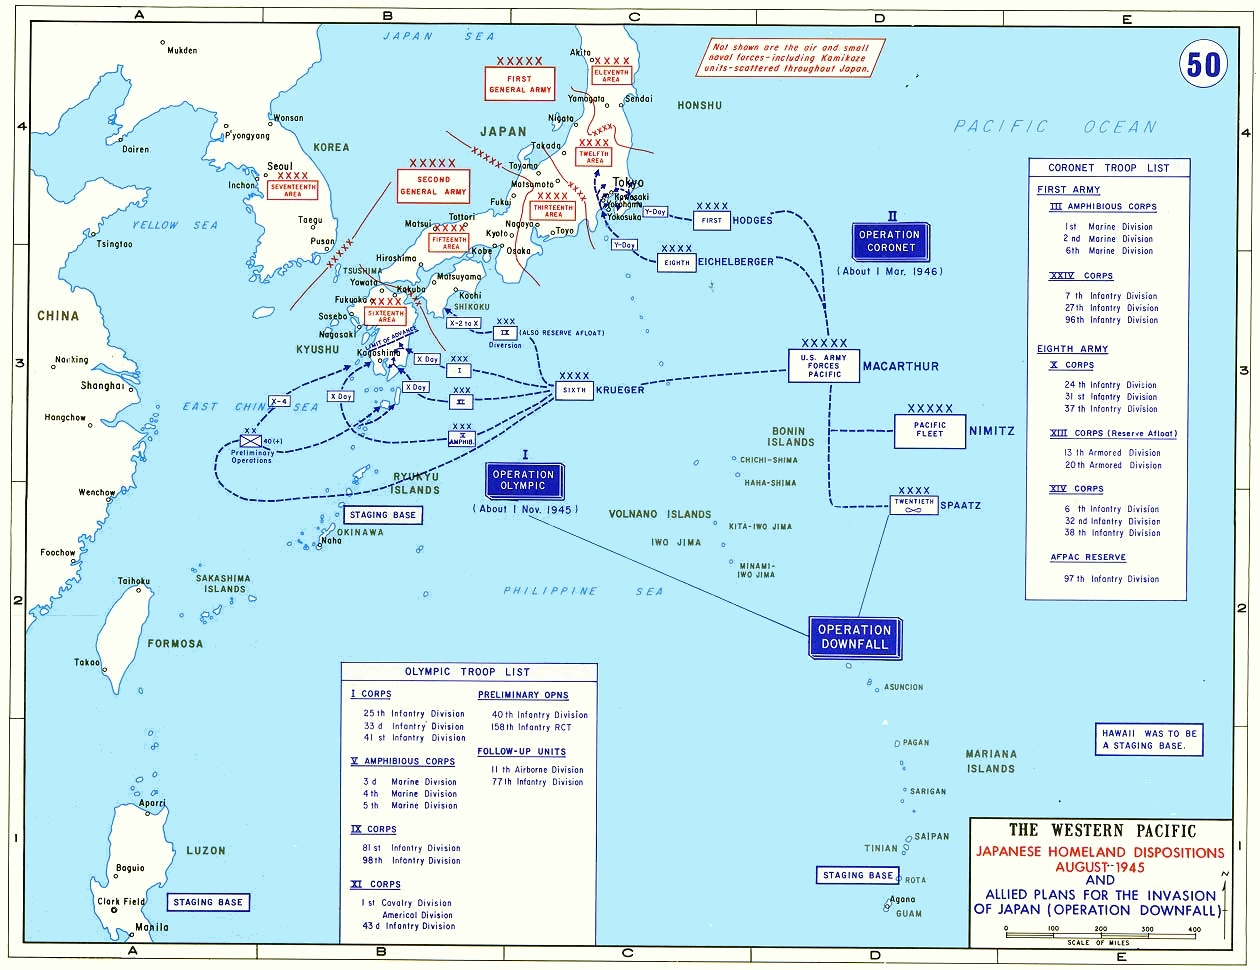 Operation Downfall - Wikipedia